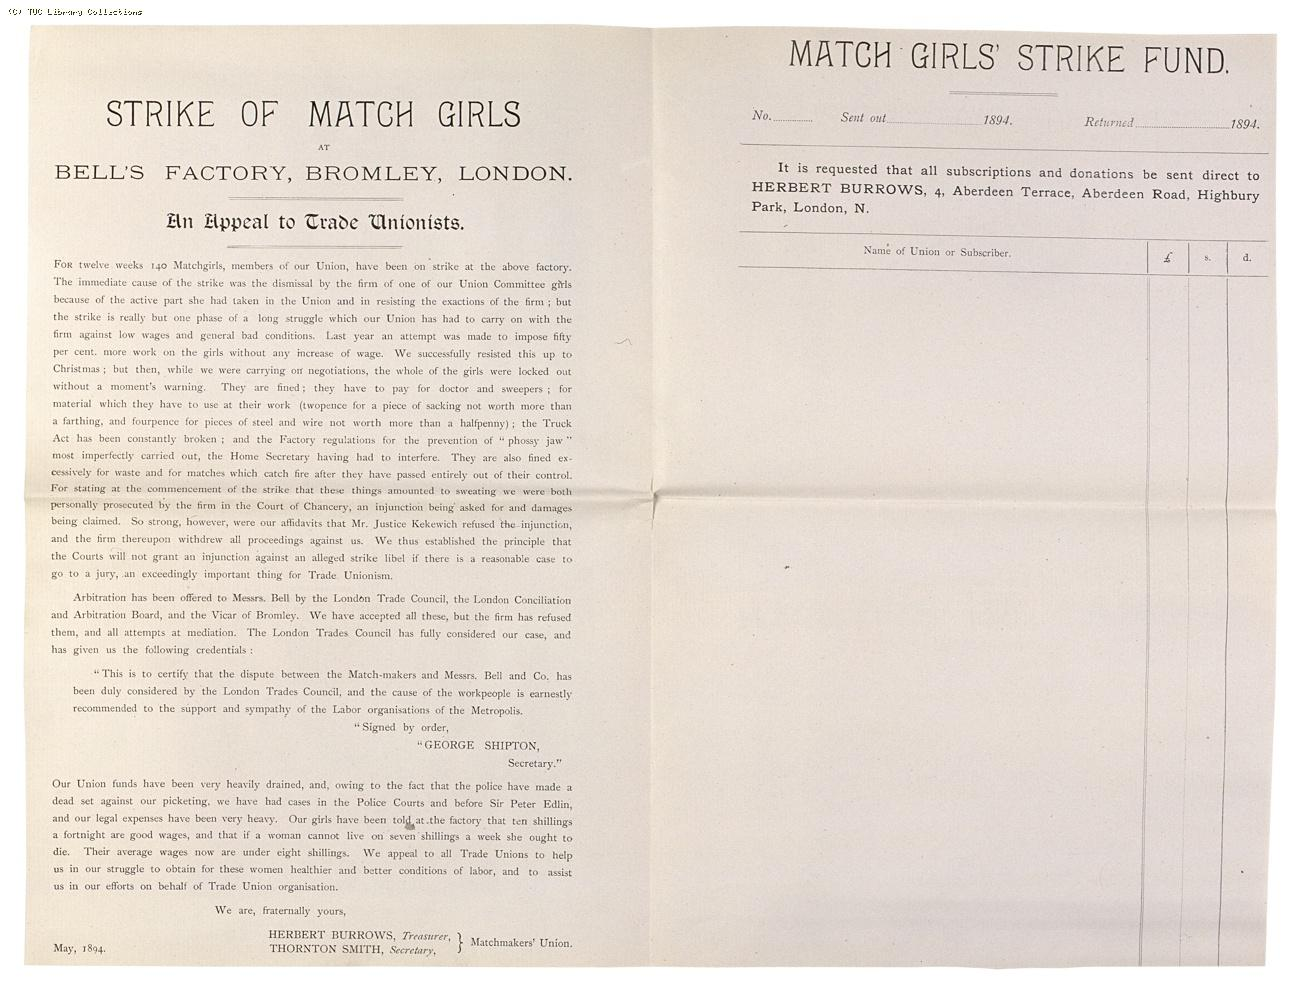 Matchmakers' Union strike fund appeal for Bell's factory, Bromley by Bow, 1894